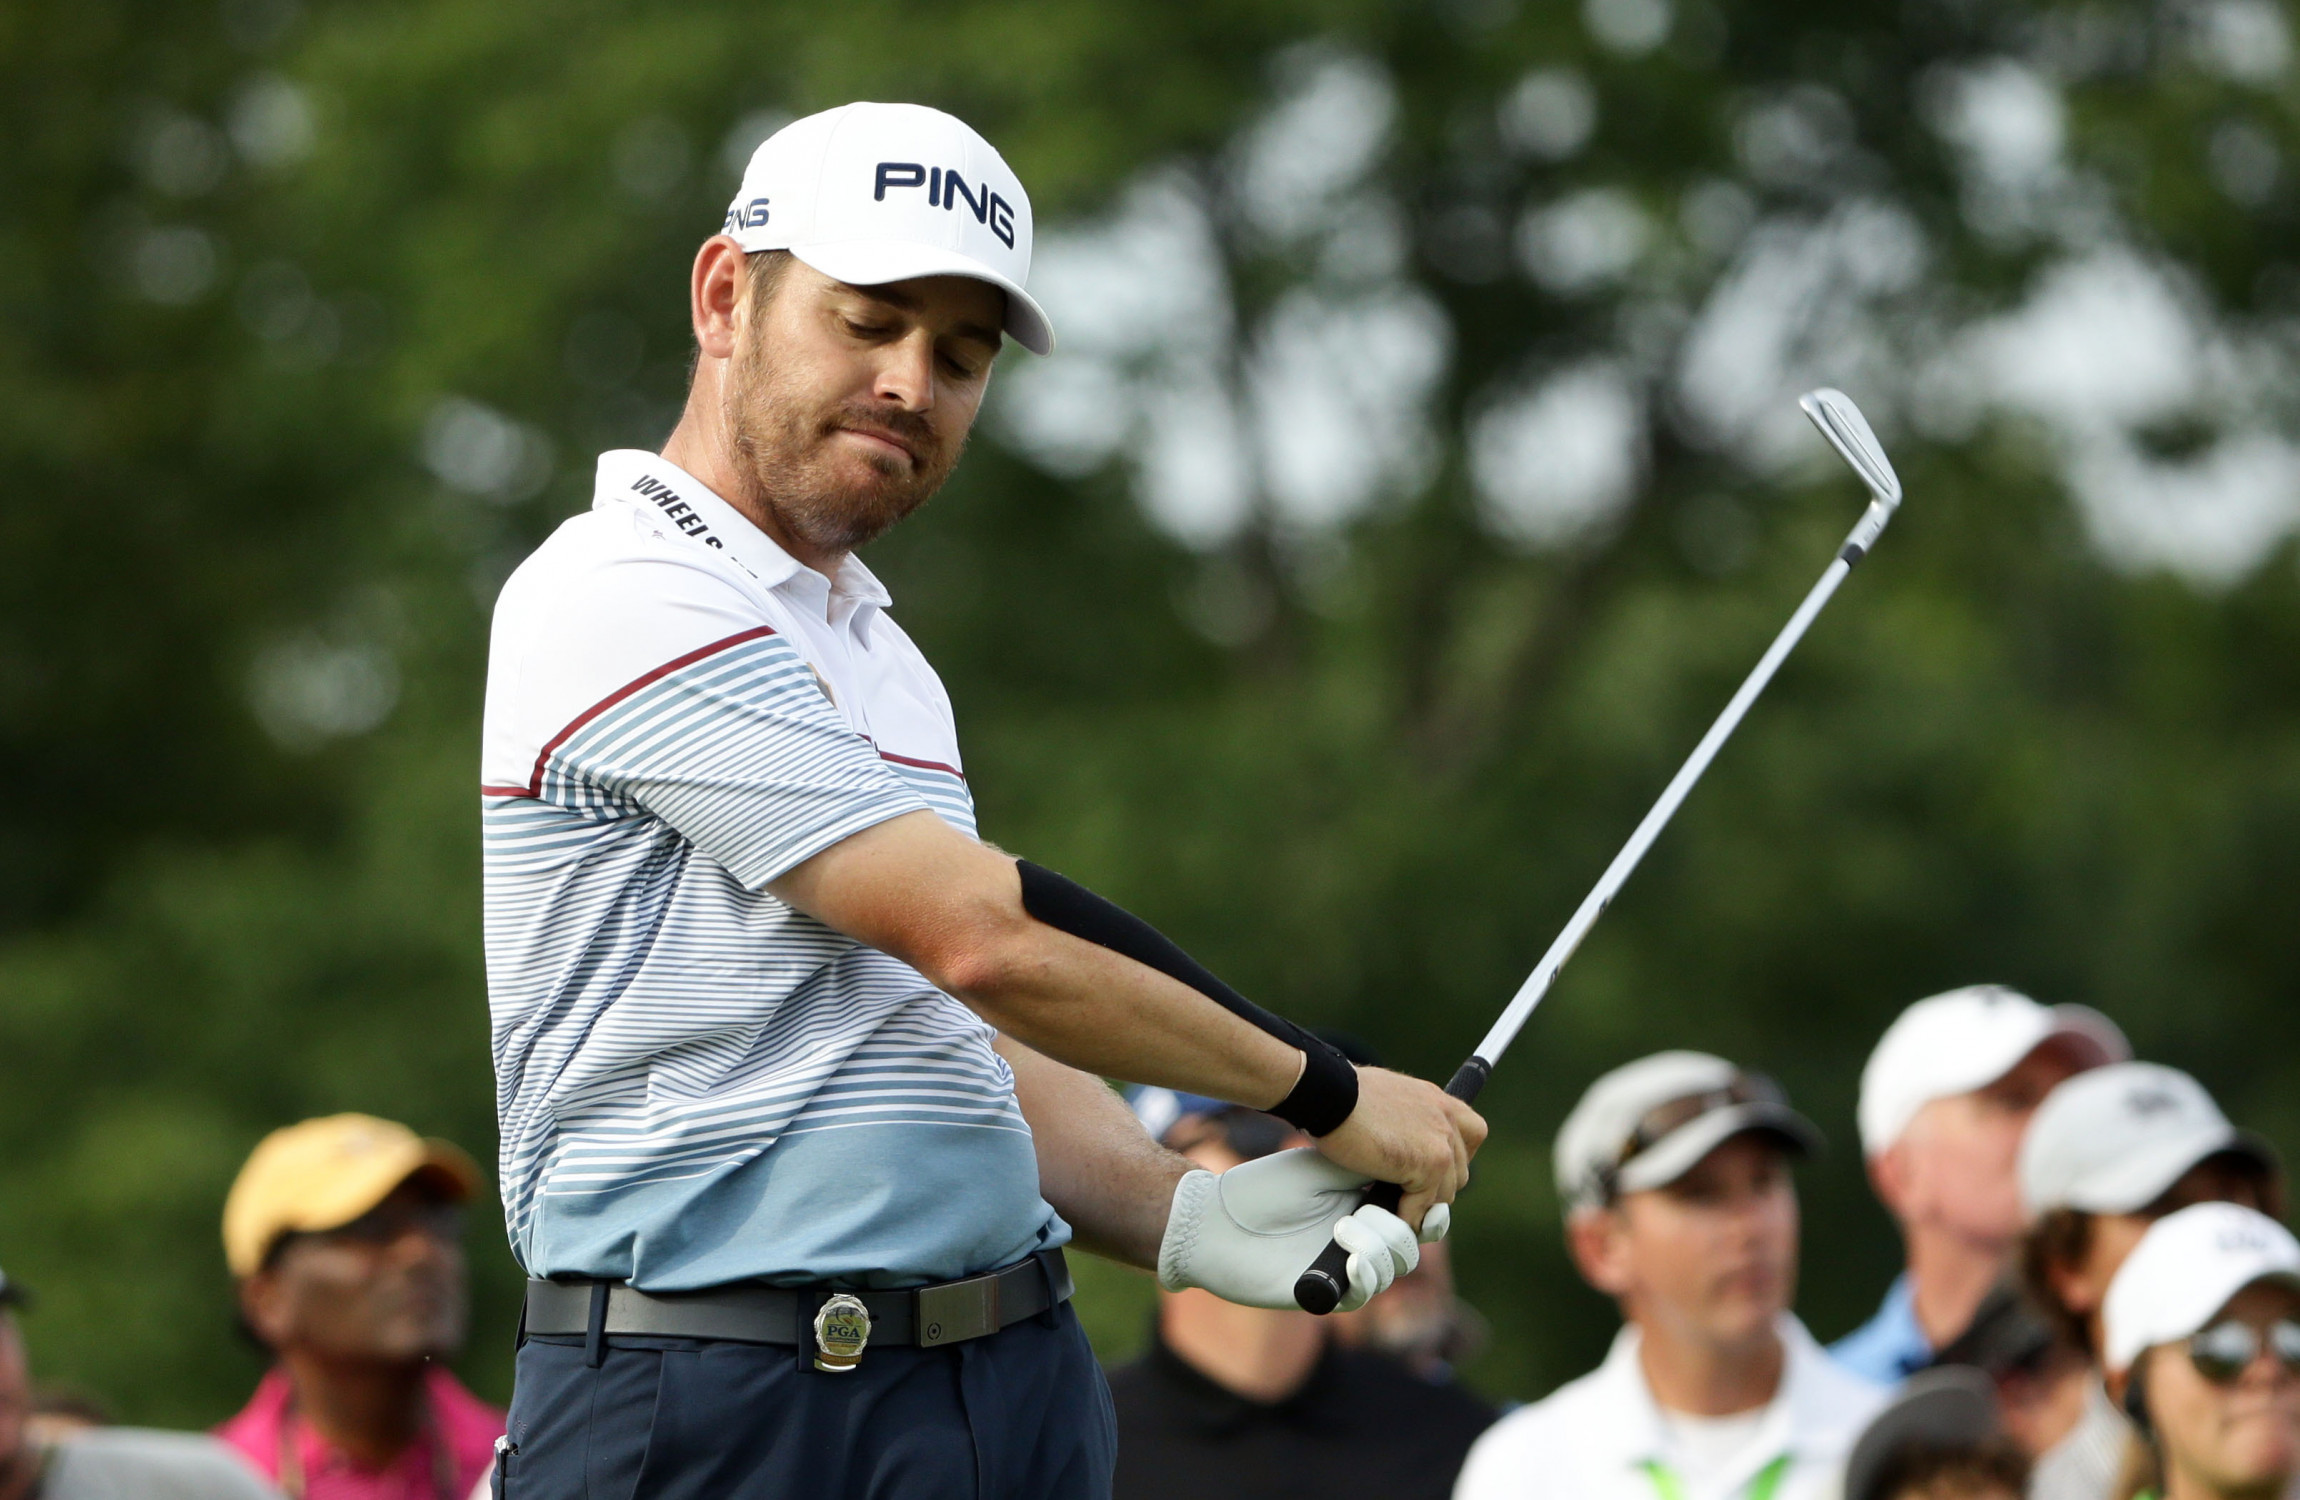 Injured Louis Oosthuizen pulls out of Joburg Open